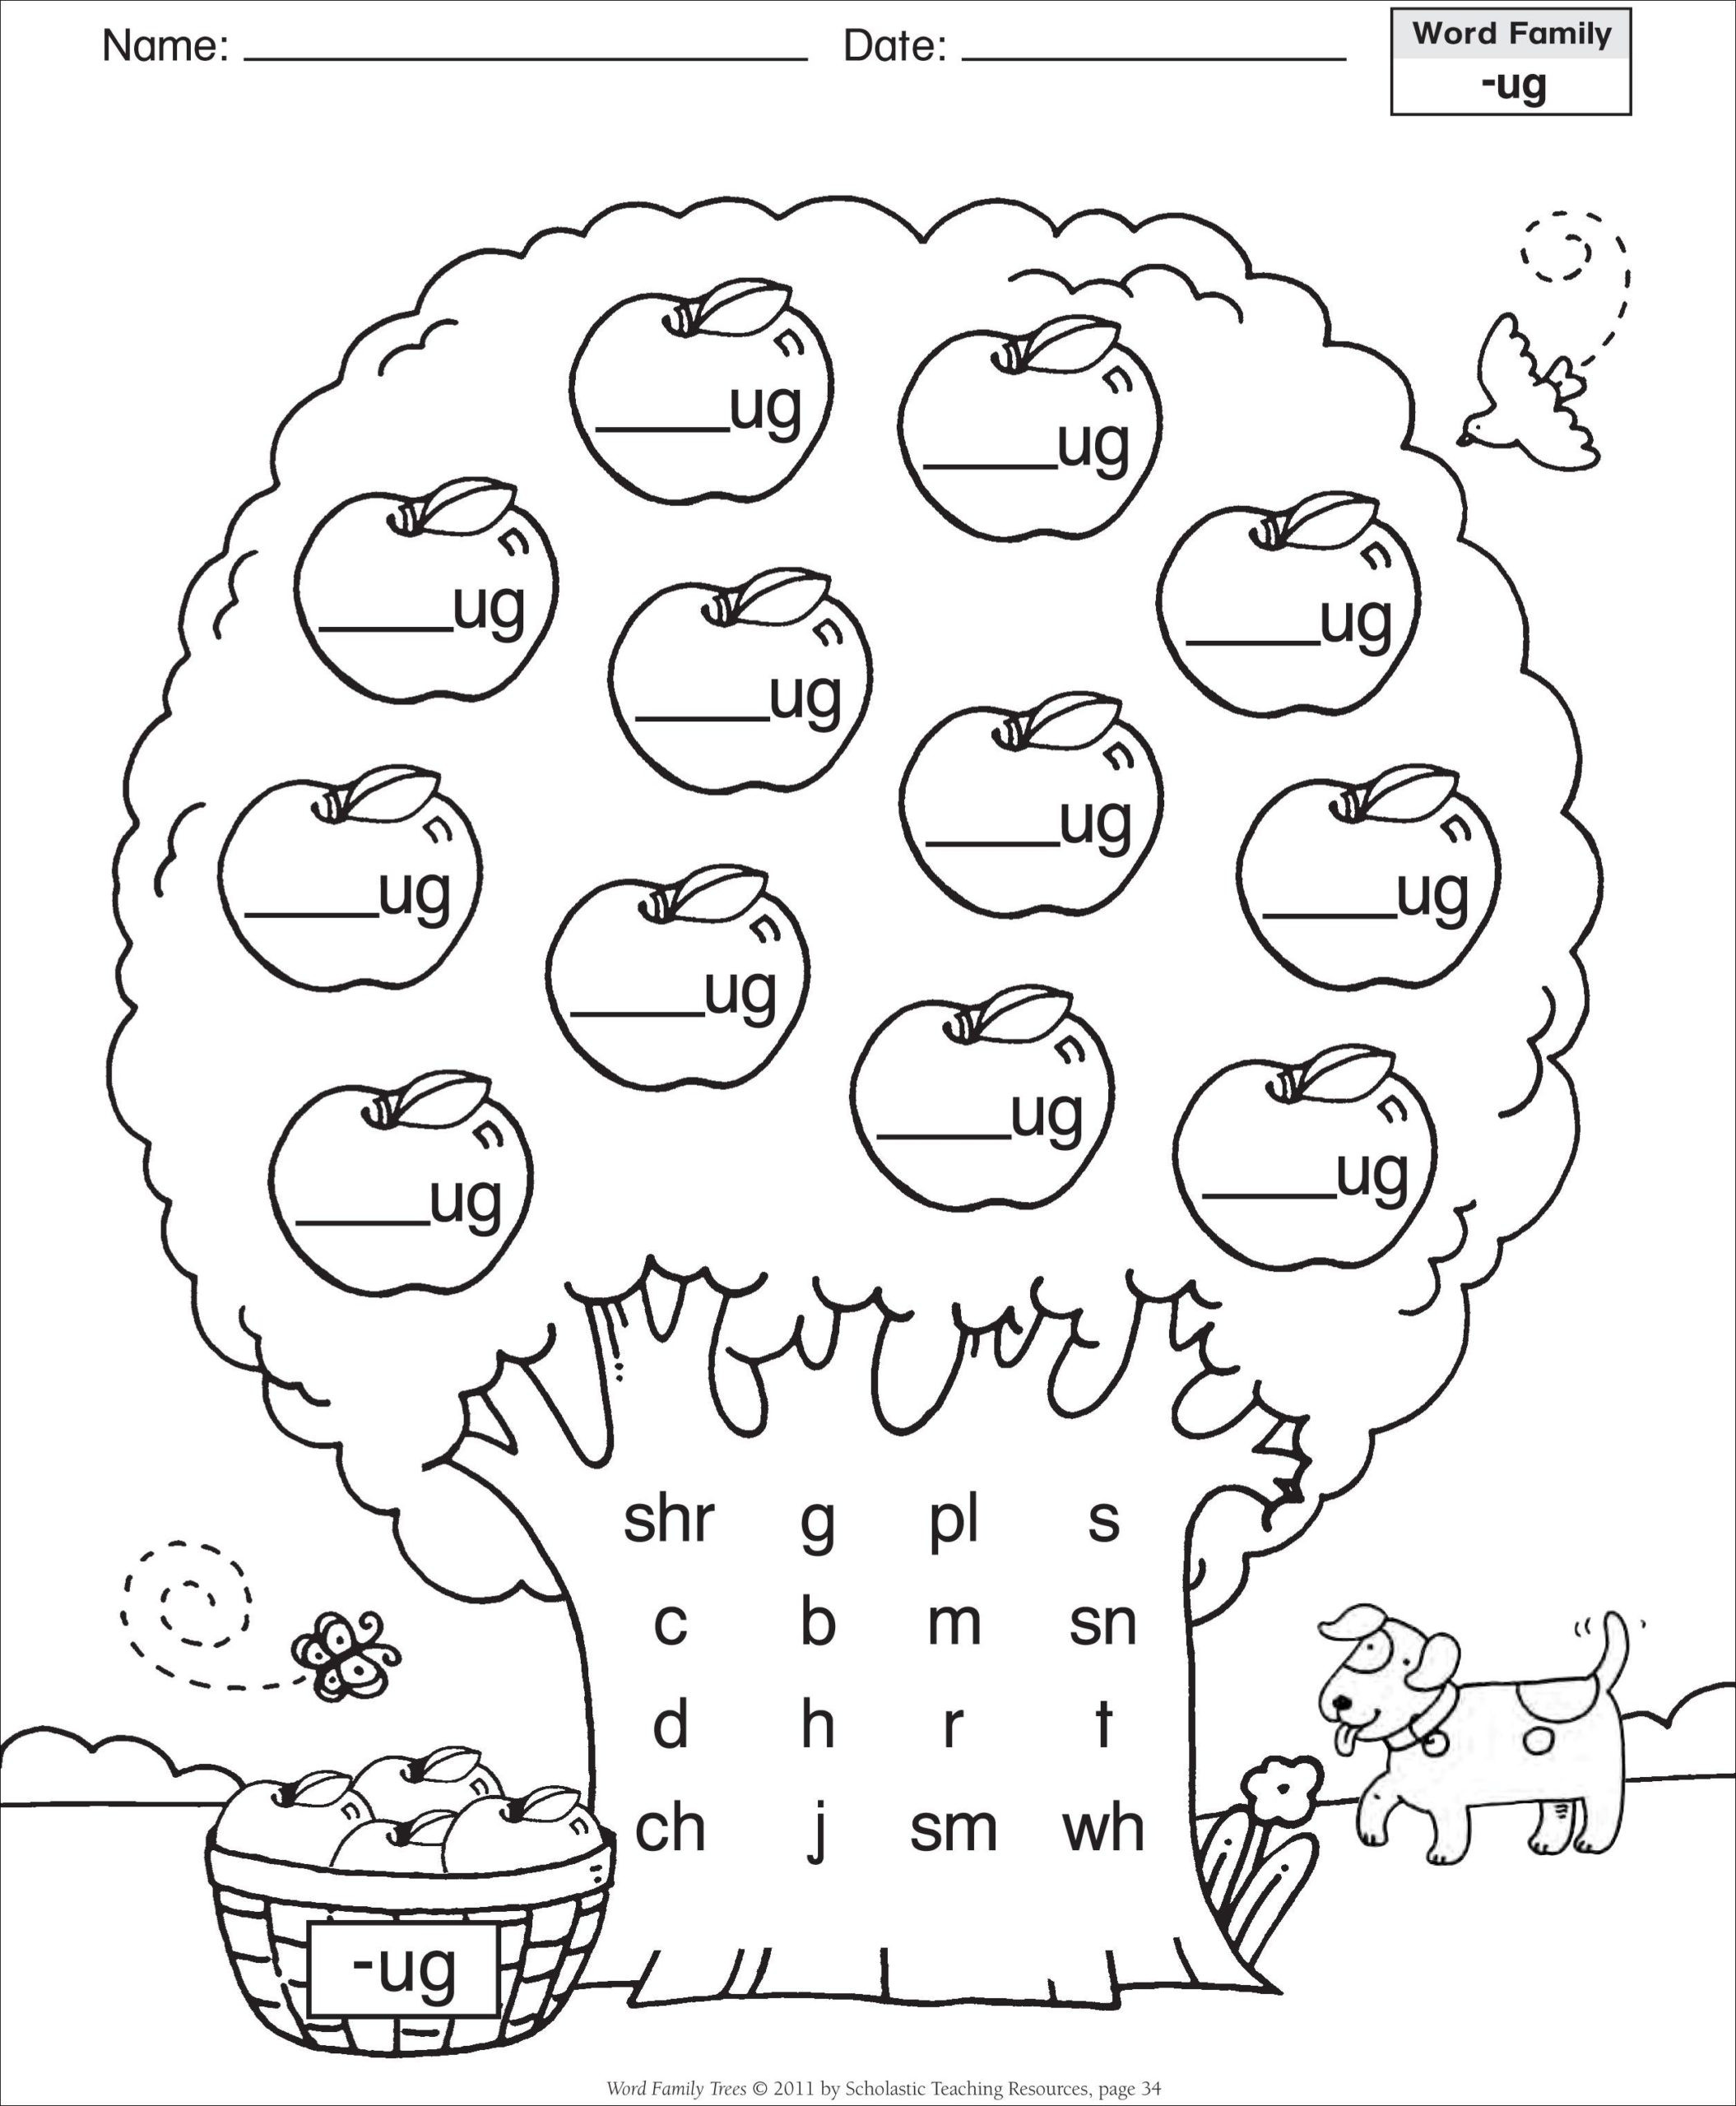 Short Vowel Worksheets 2nd Grade Short Vowel Ug Word Family Tree Families Reading with